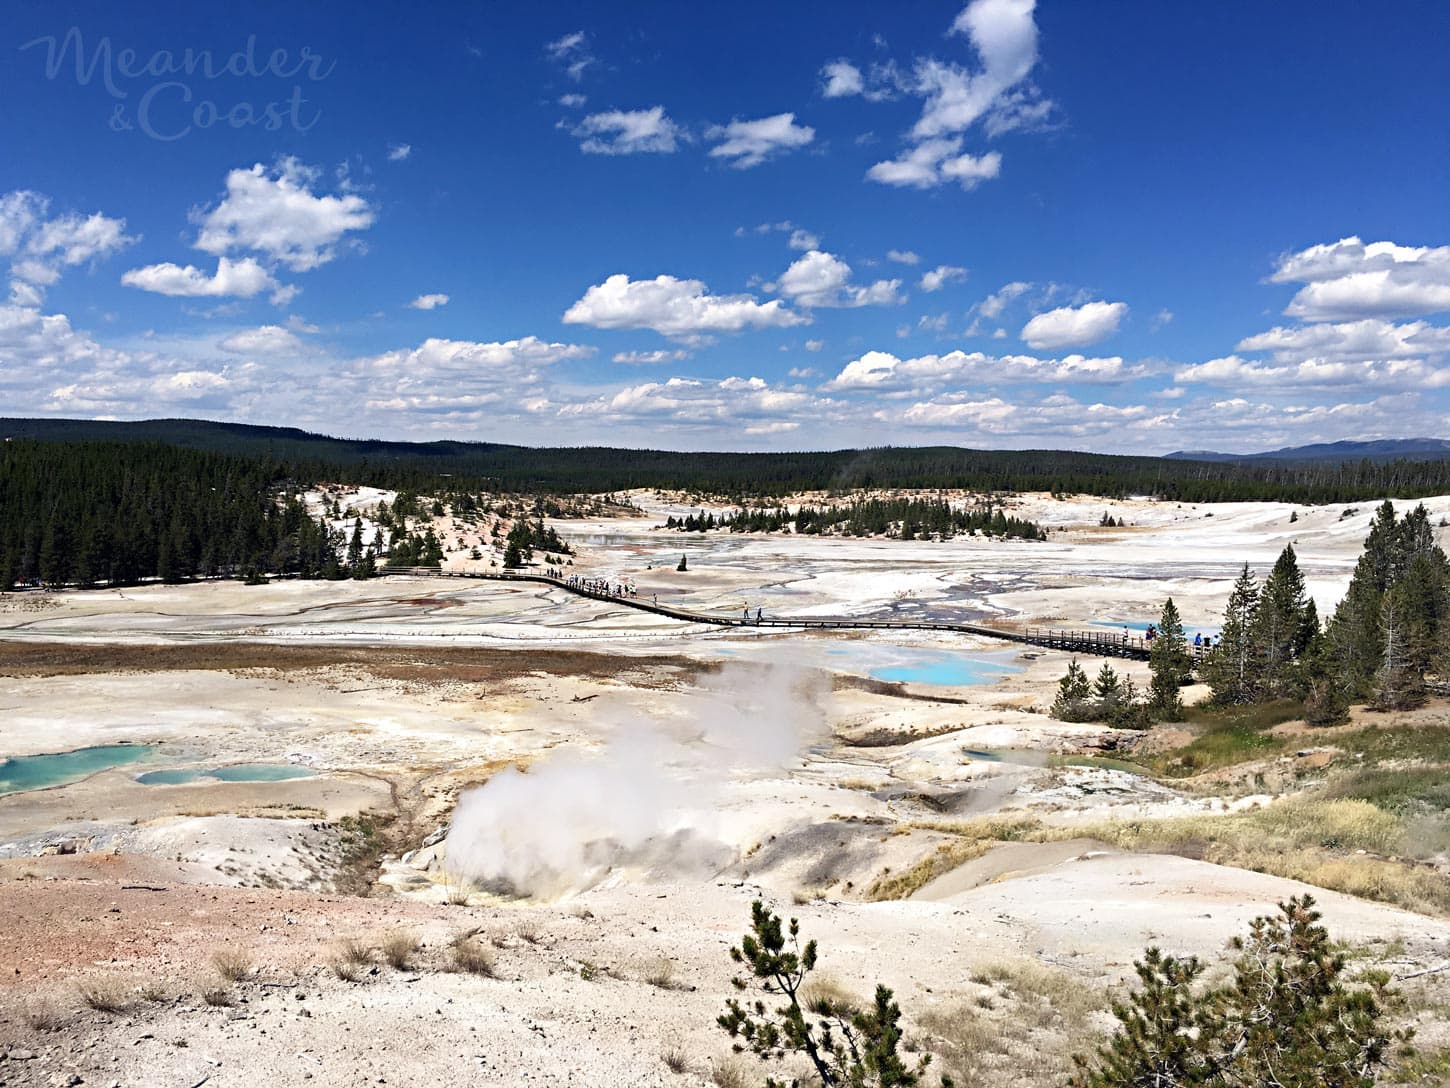 Norris Geyser Basin is home of hundreds of geysers, steam vents, mud pots, and the tallest geyser. | What to see in Yellowstone National Park that isn't Old Faithful. Meander & Coast #yellowstone #nationalpark #yellowstoneattractions #thingstosee #wyoming #norrisgeyserbasin